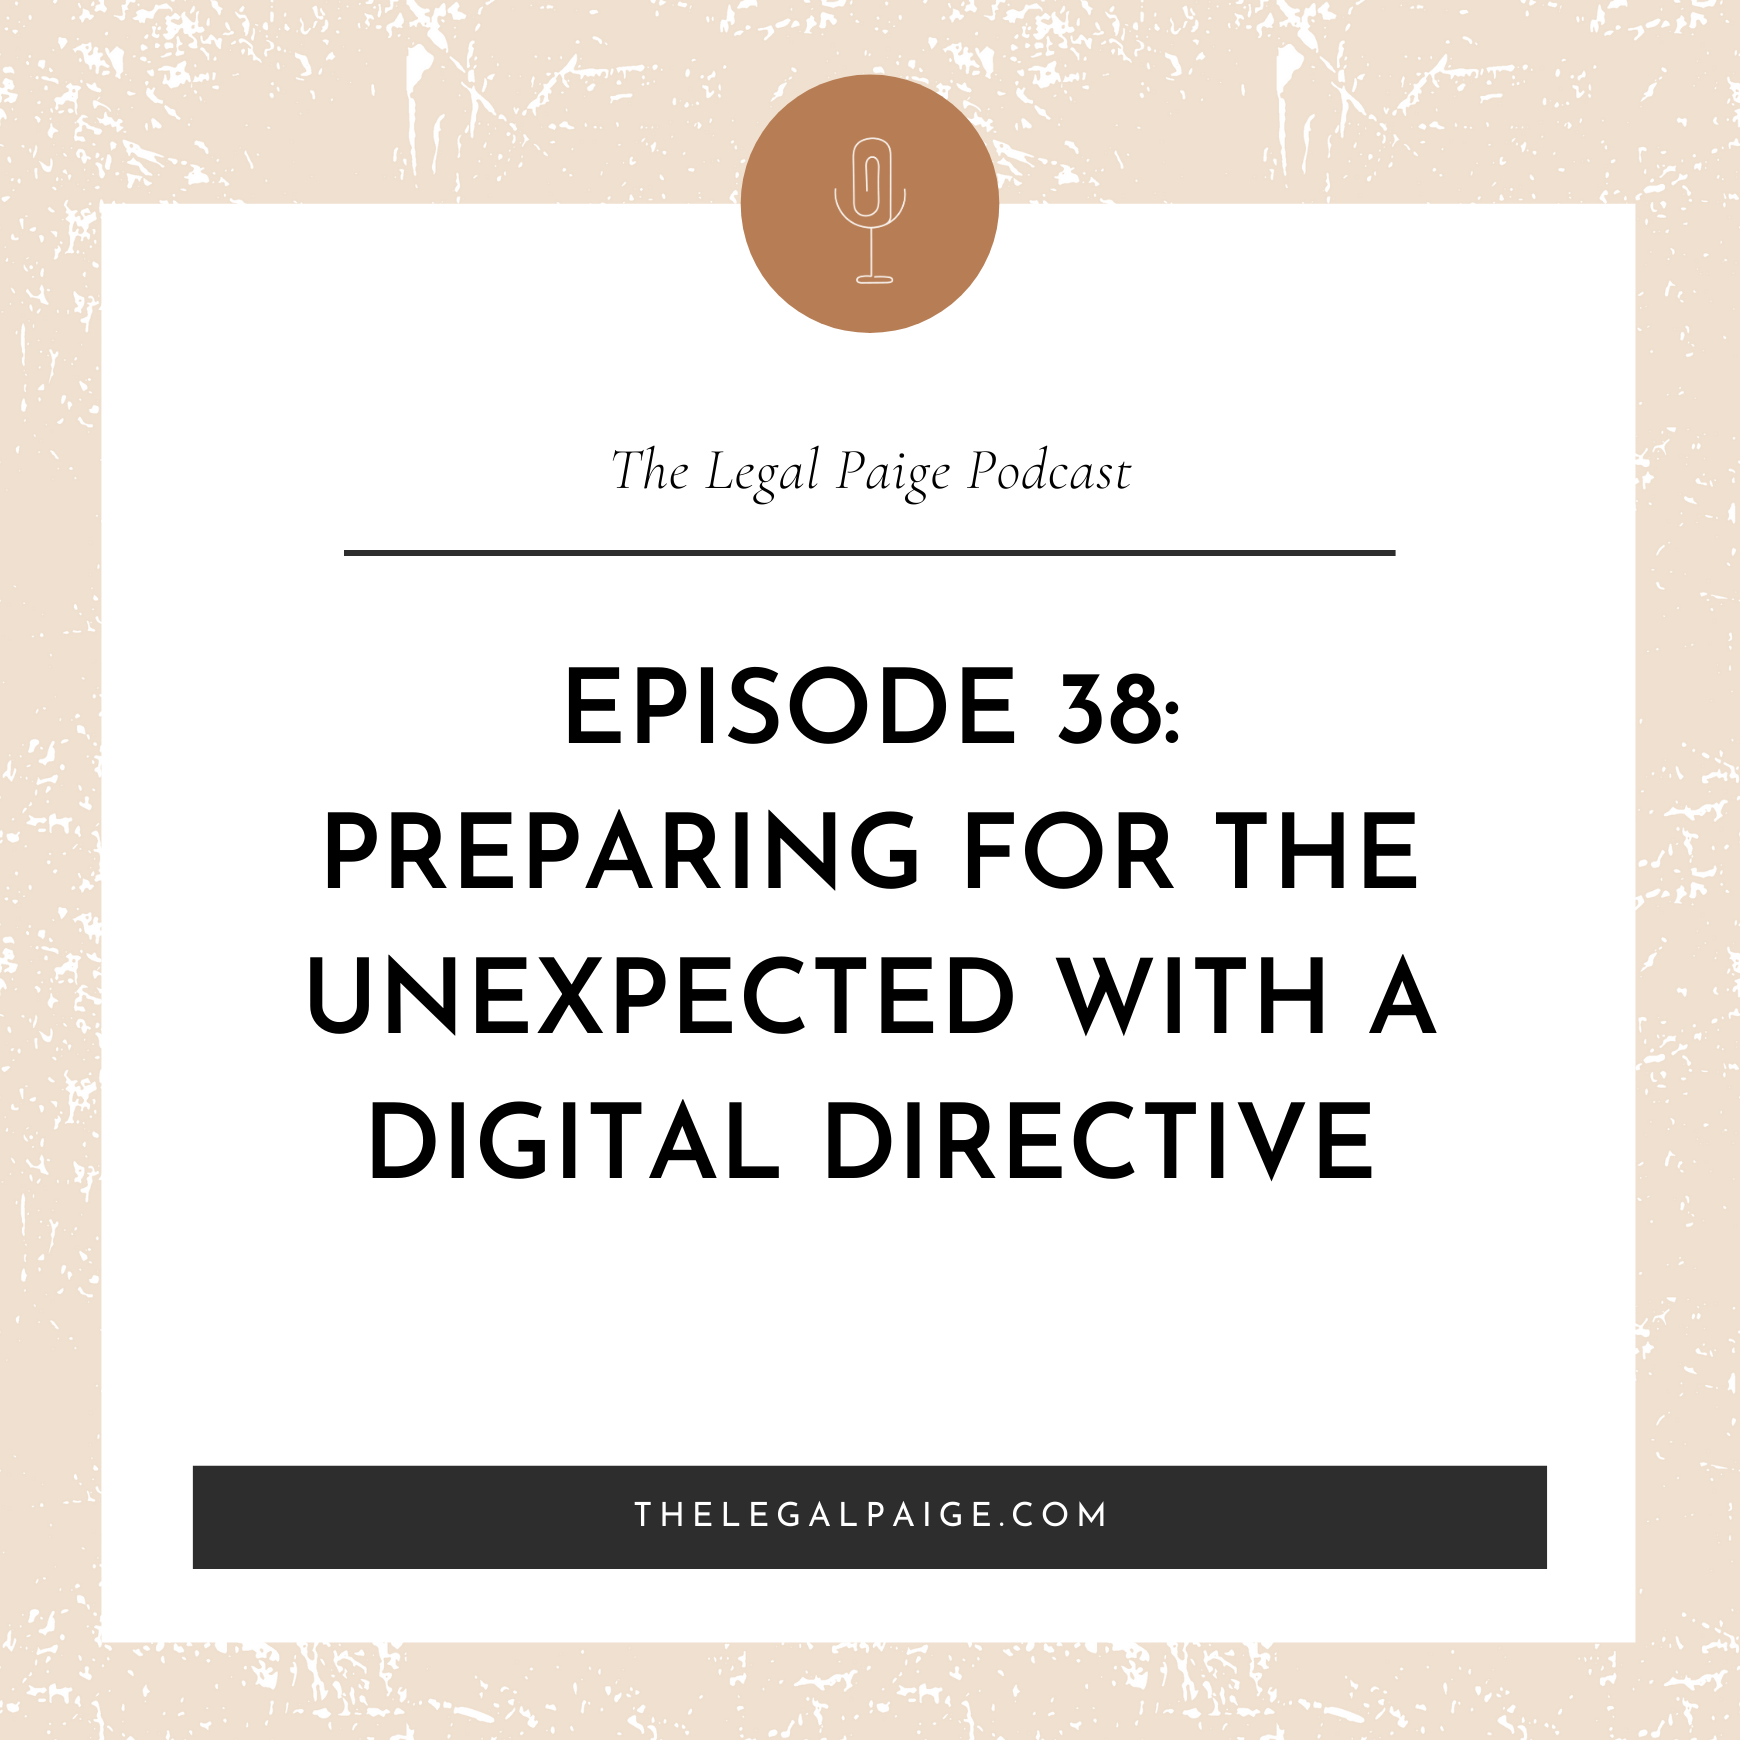 Ep 38: Preparing for the Unexpected with a Digital Directive